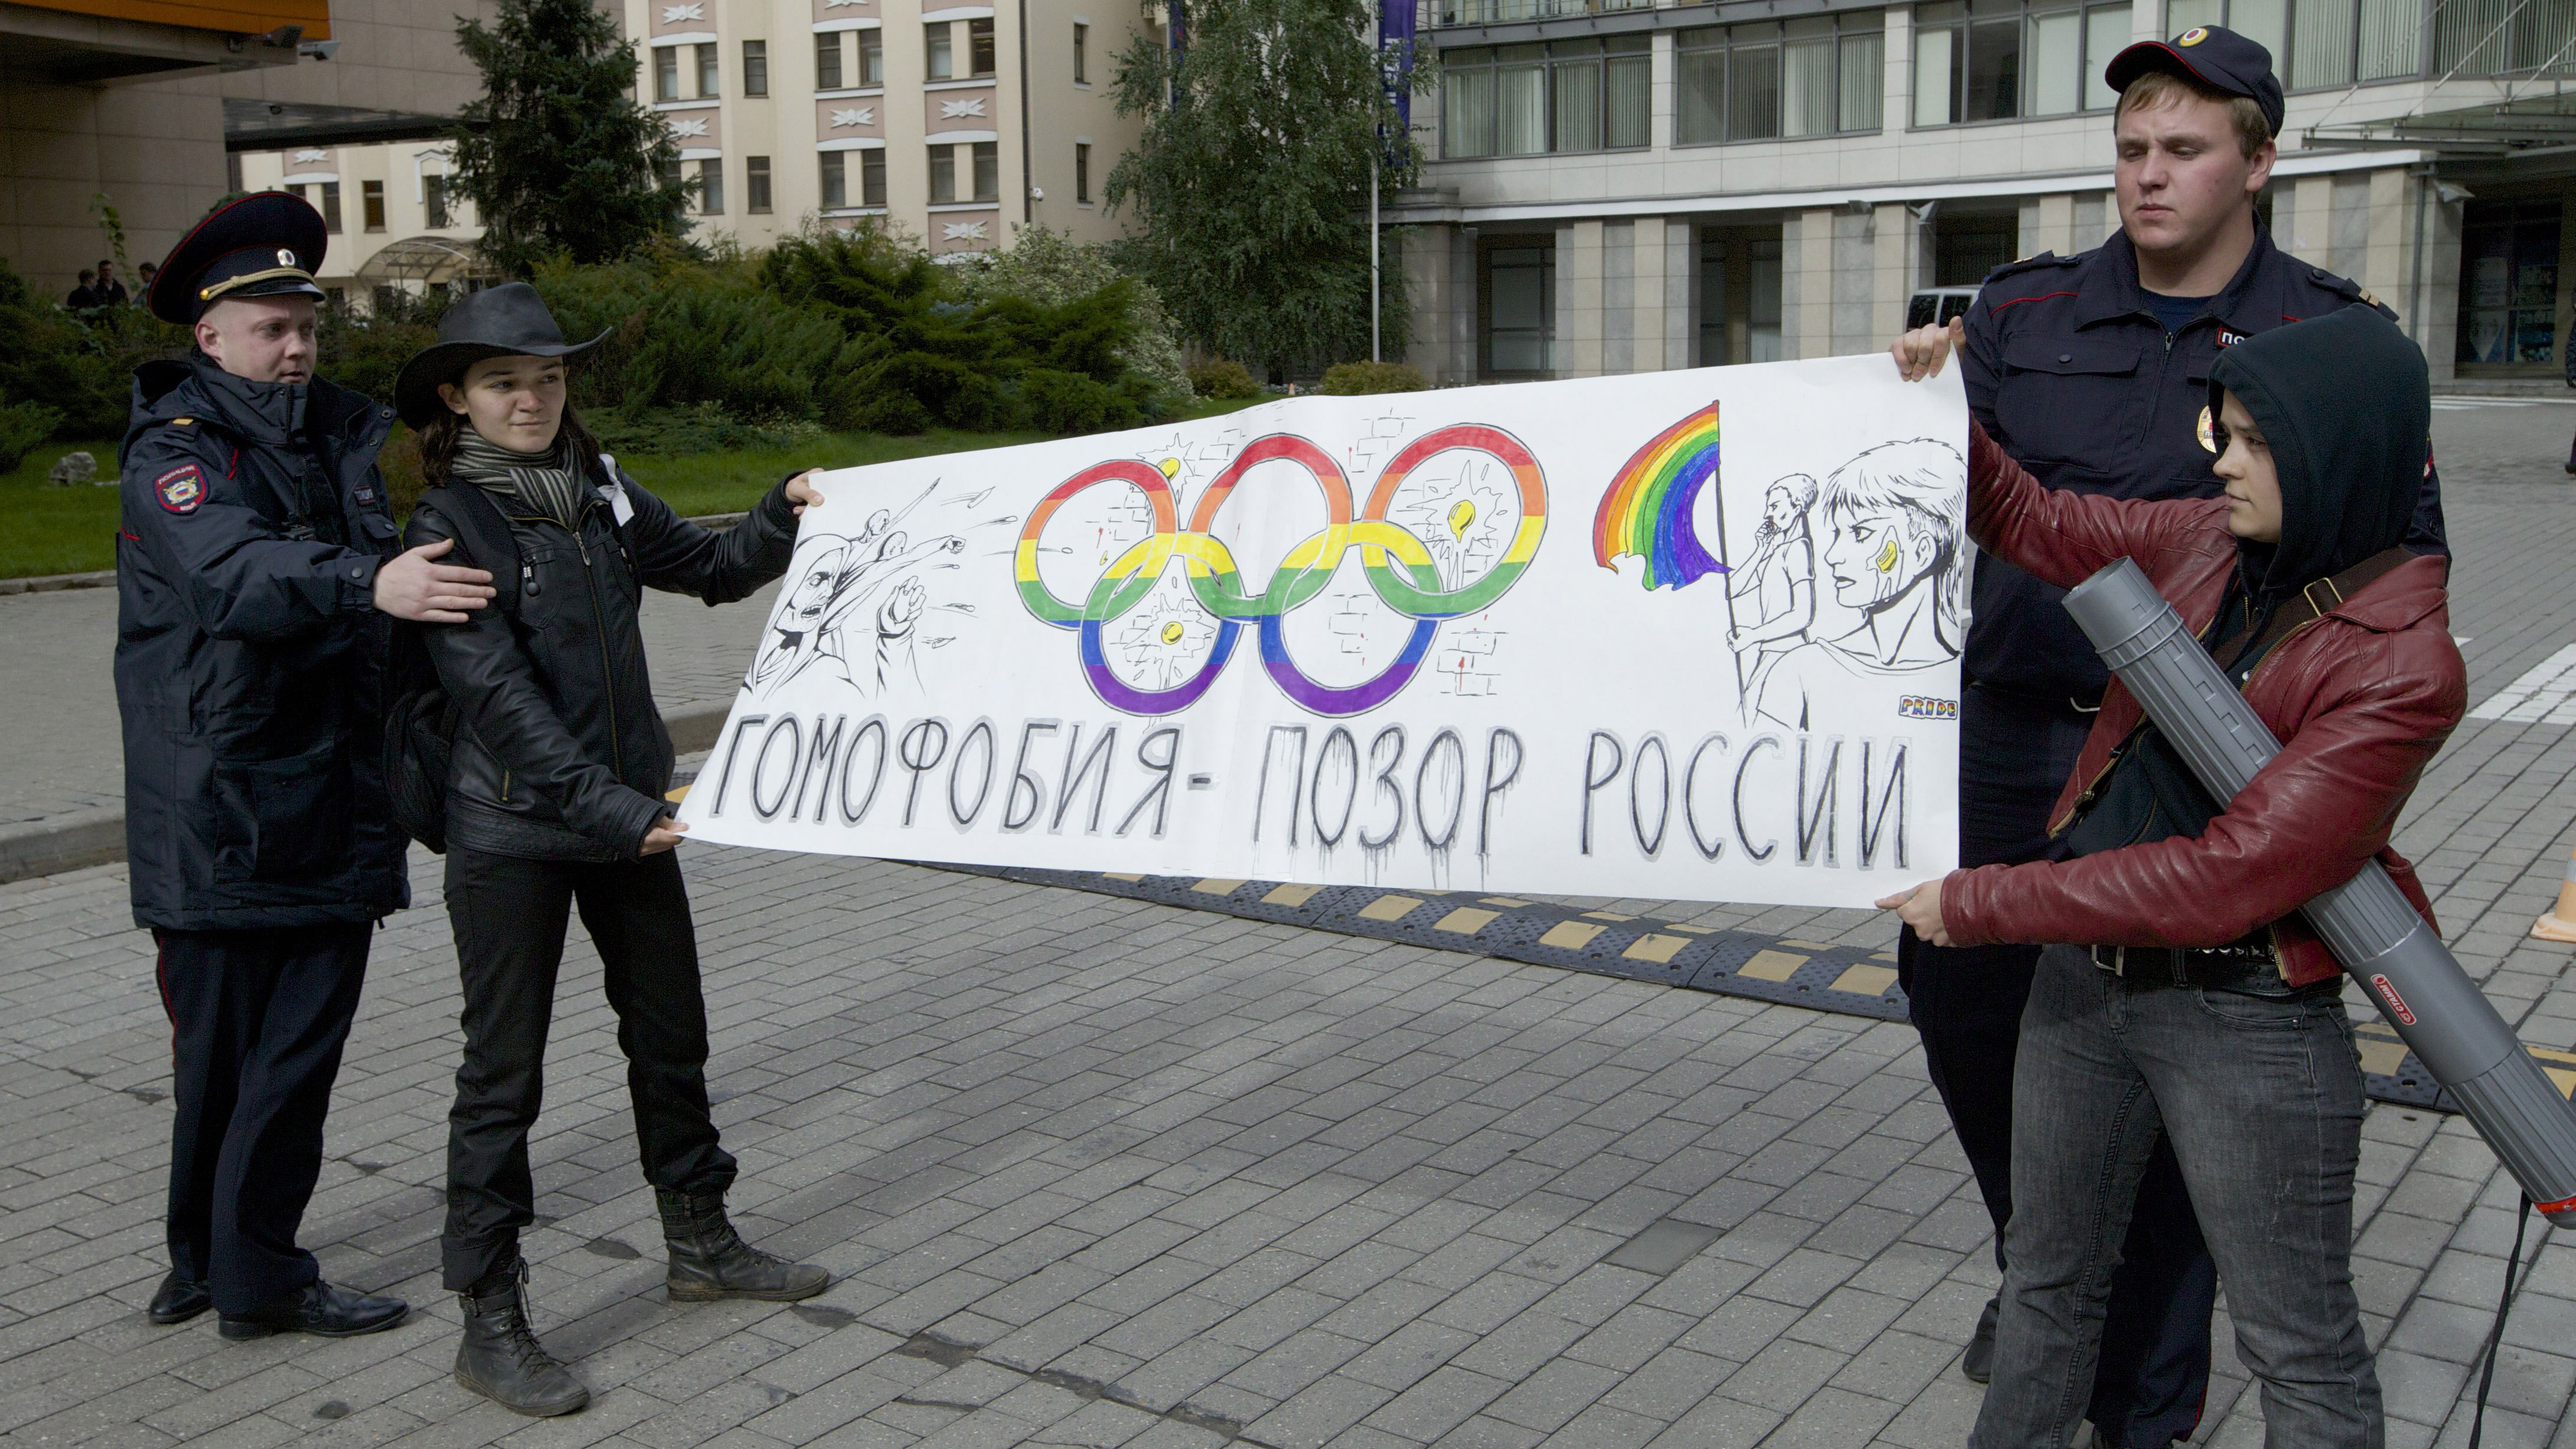 Russia, Gay Rights, And The Sochi Olympics